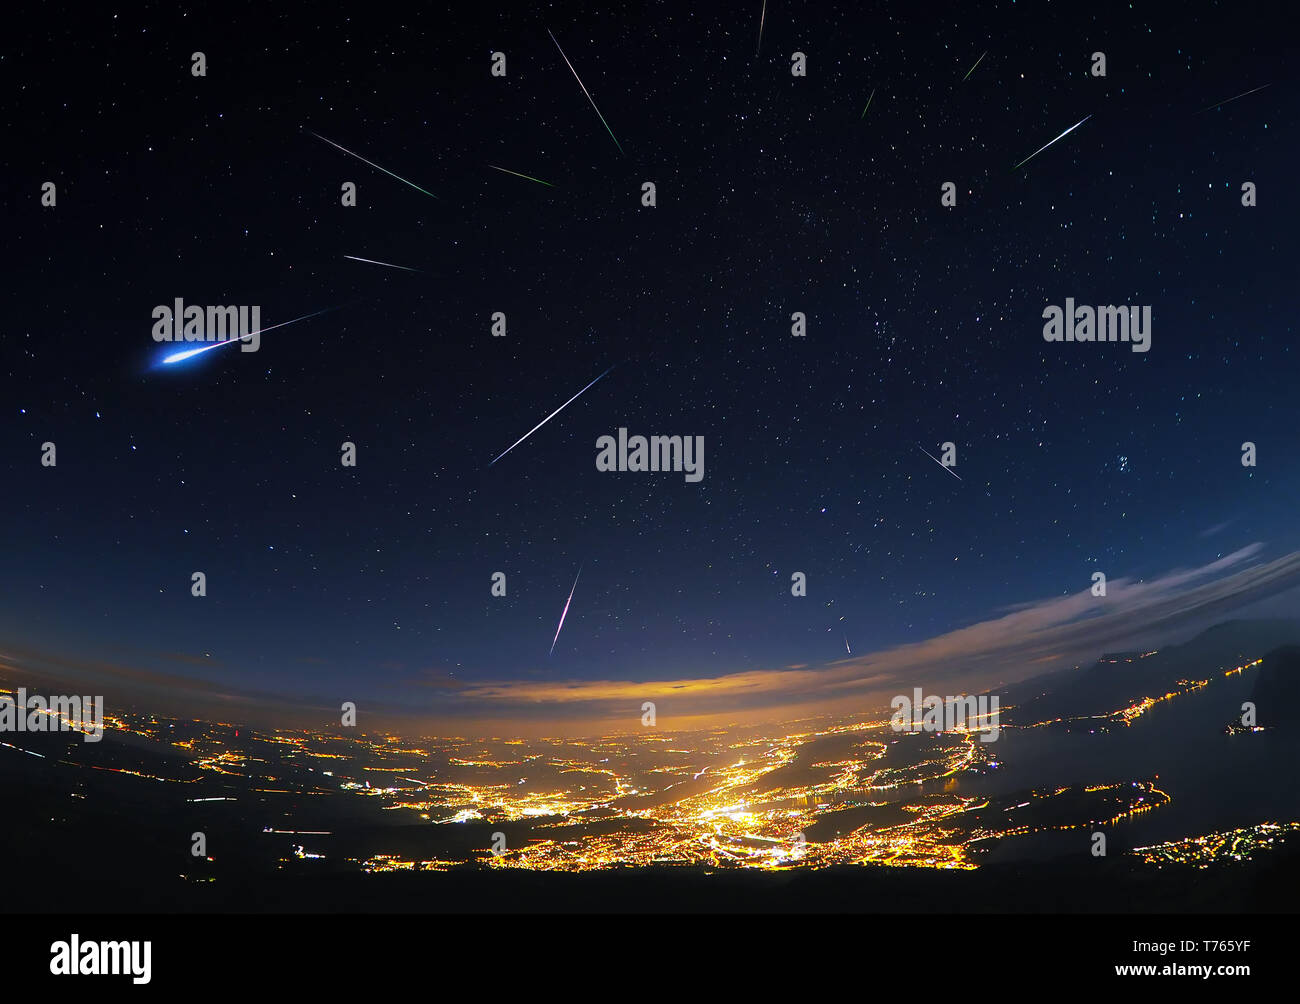 perseid-meteor-shower-over-lucerne-T765YF.jpg